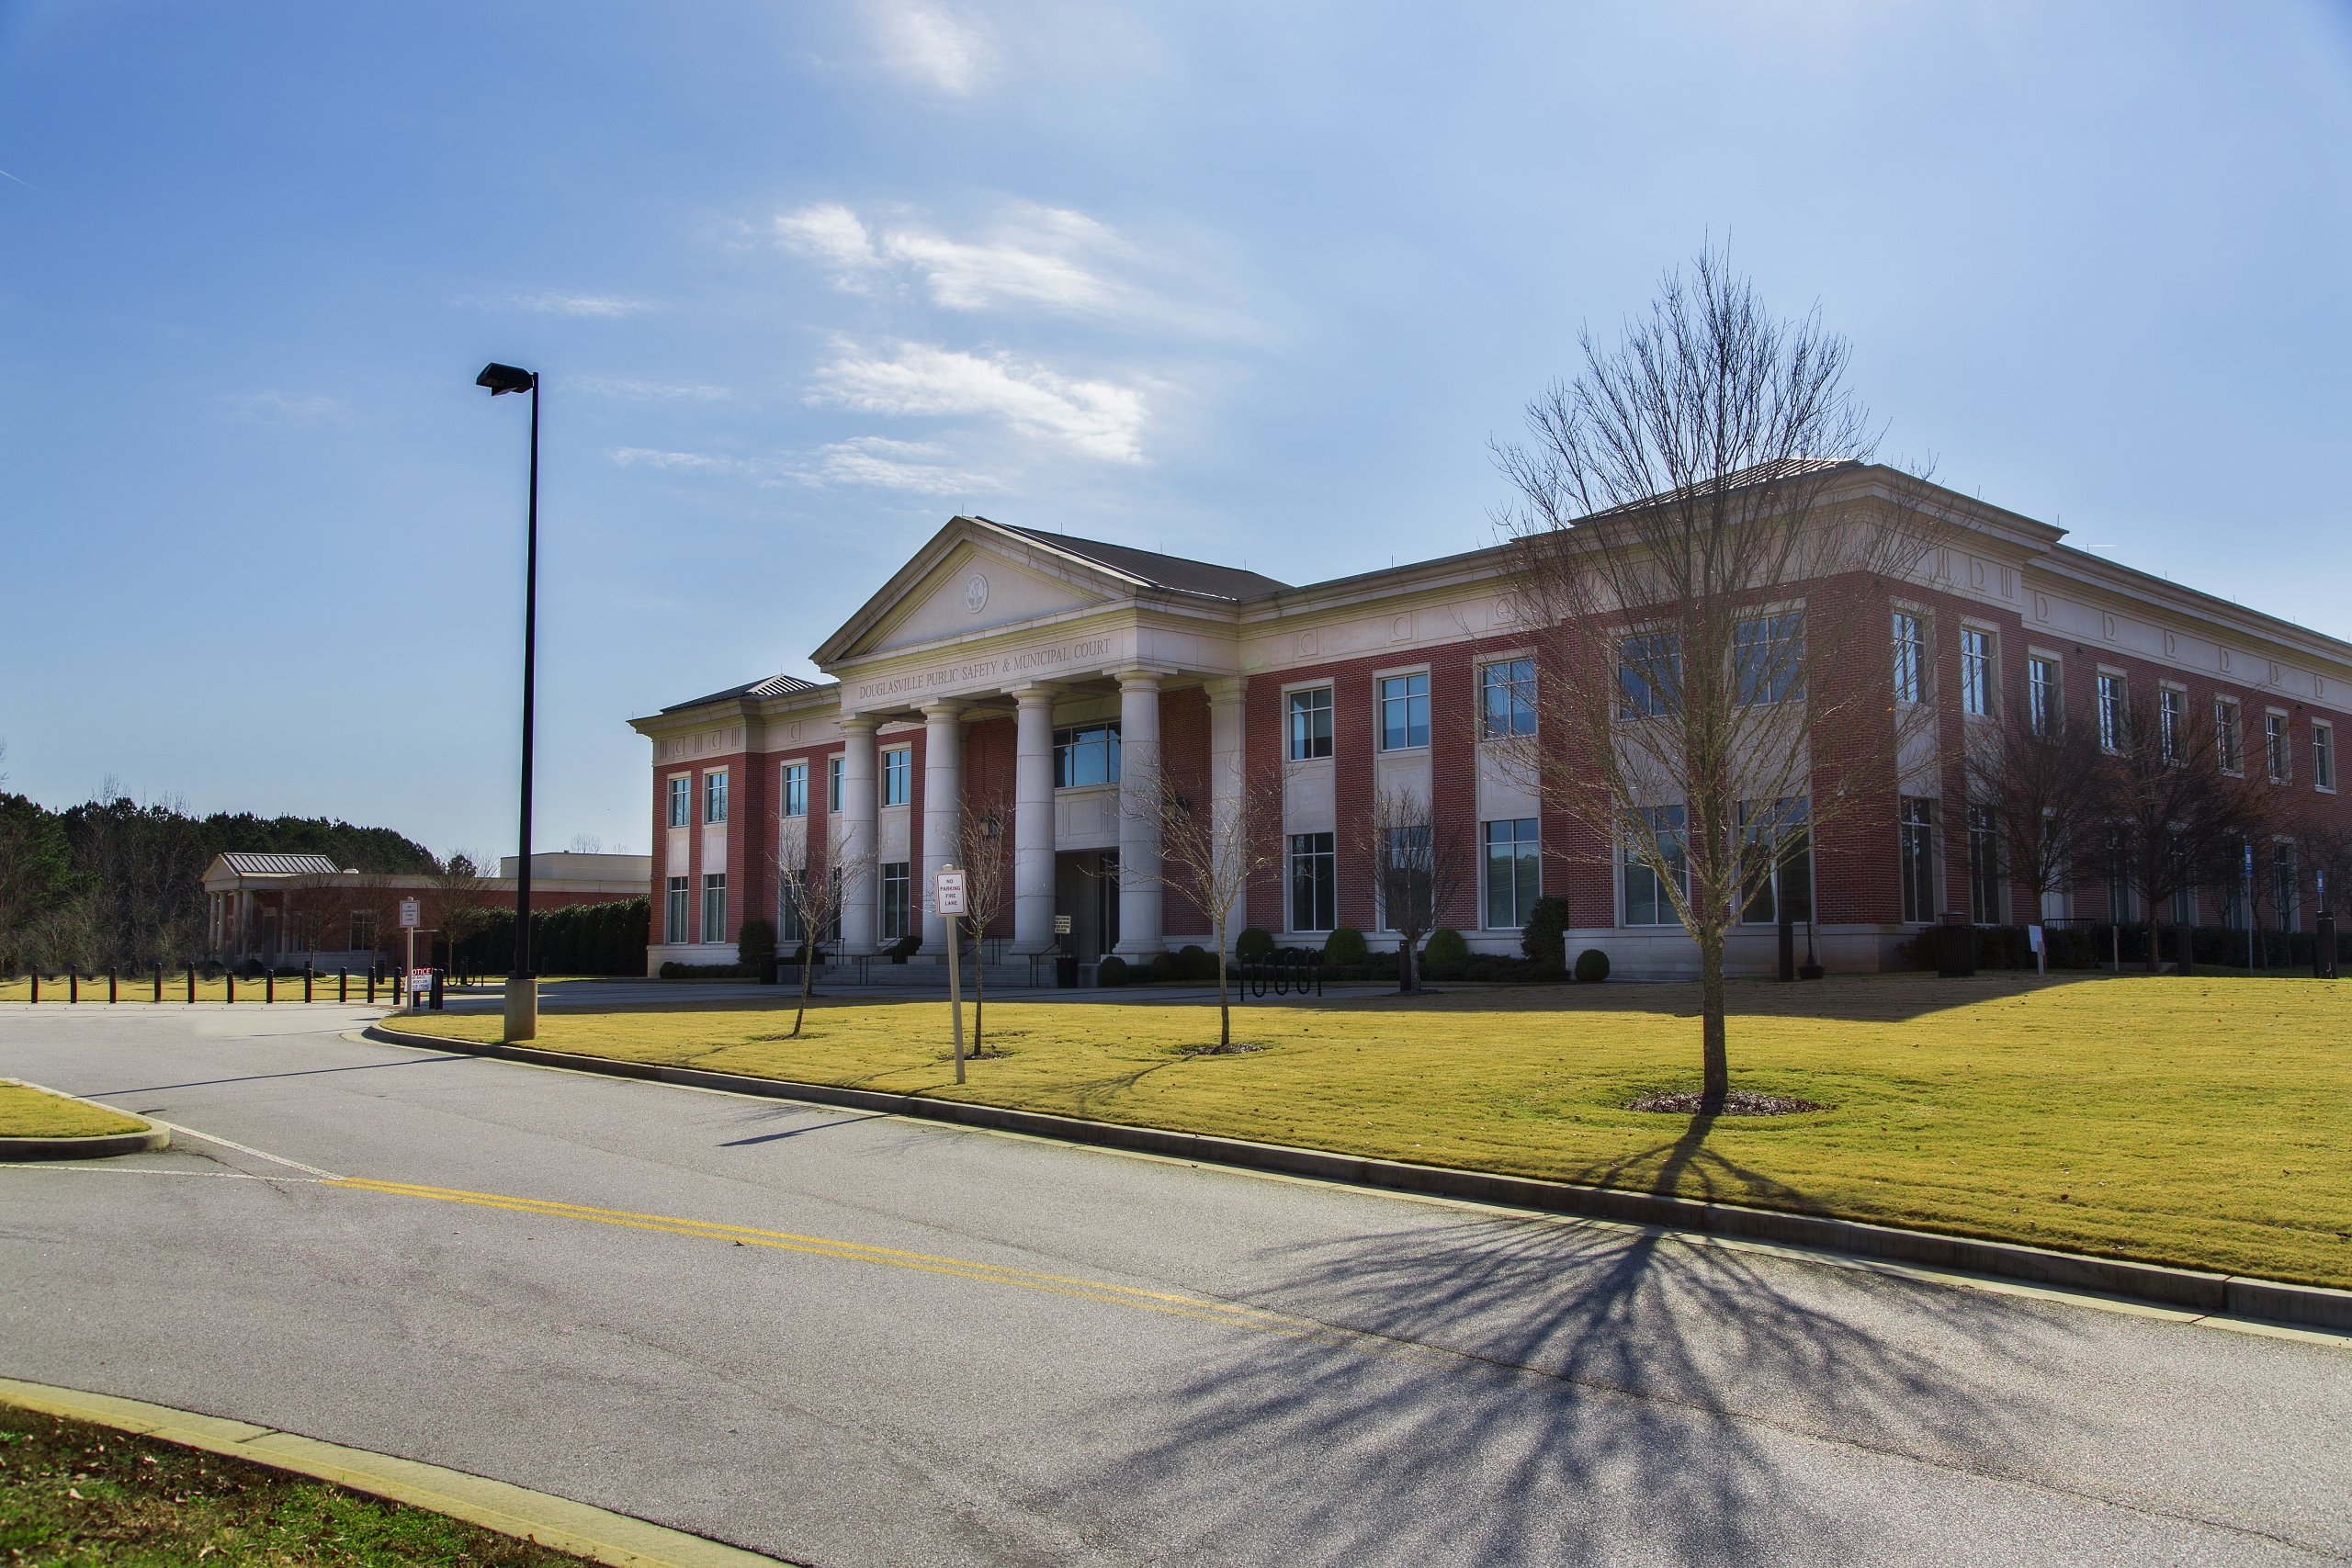 Douglasville Municipal Court & Police Headquarters